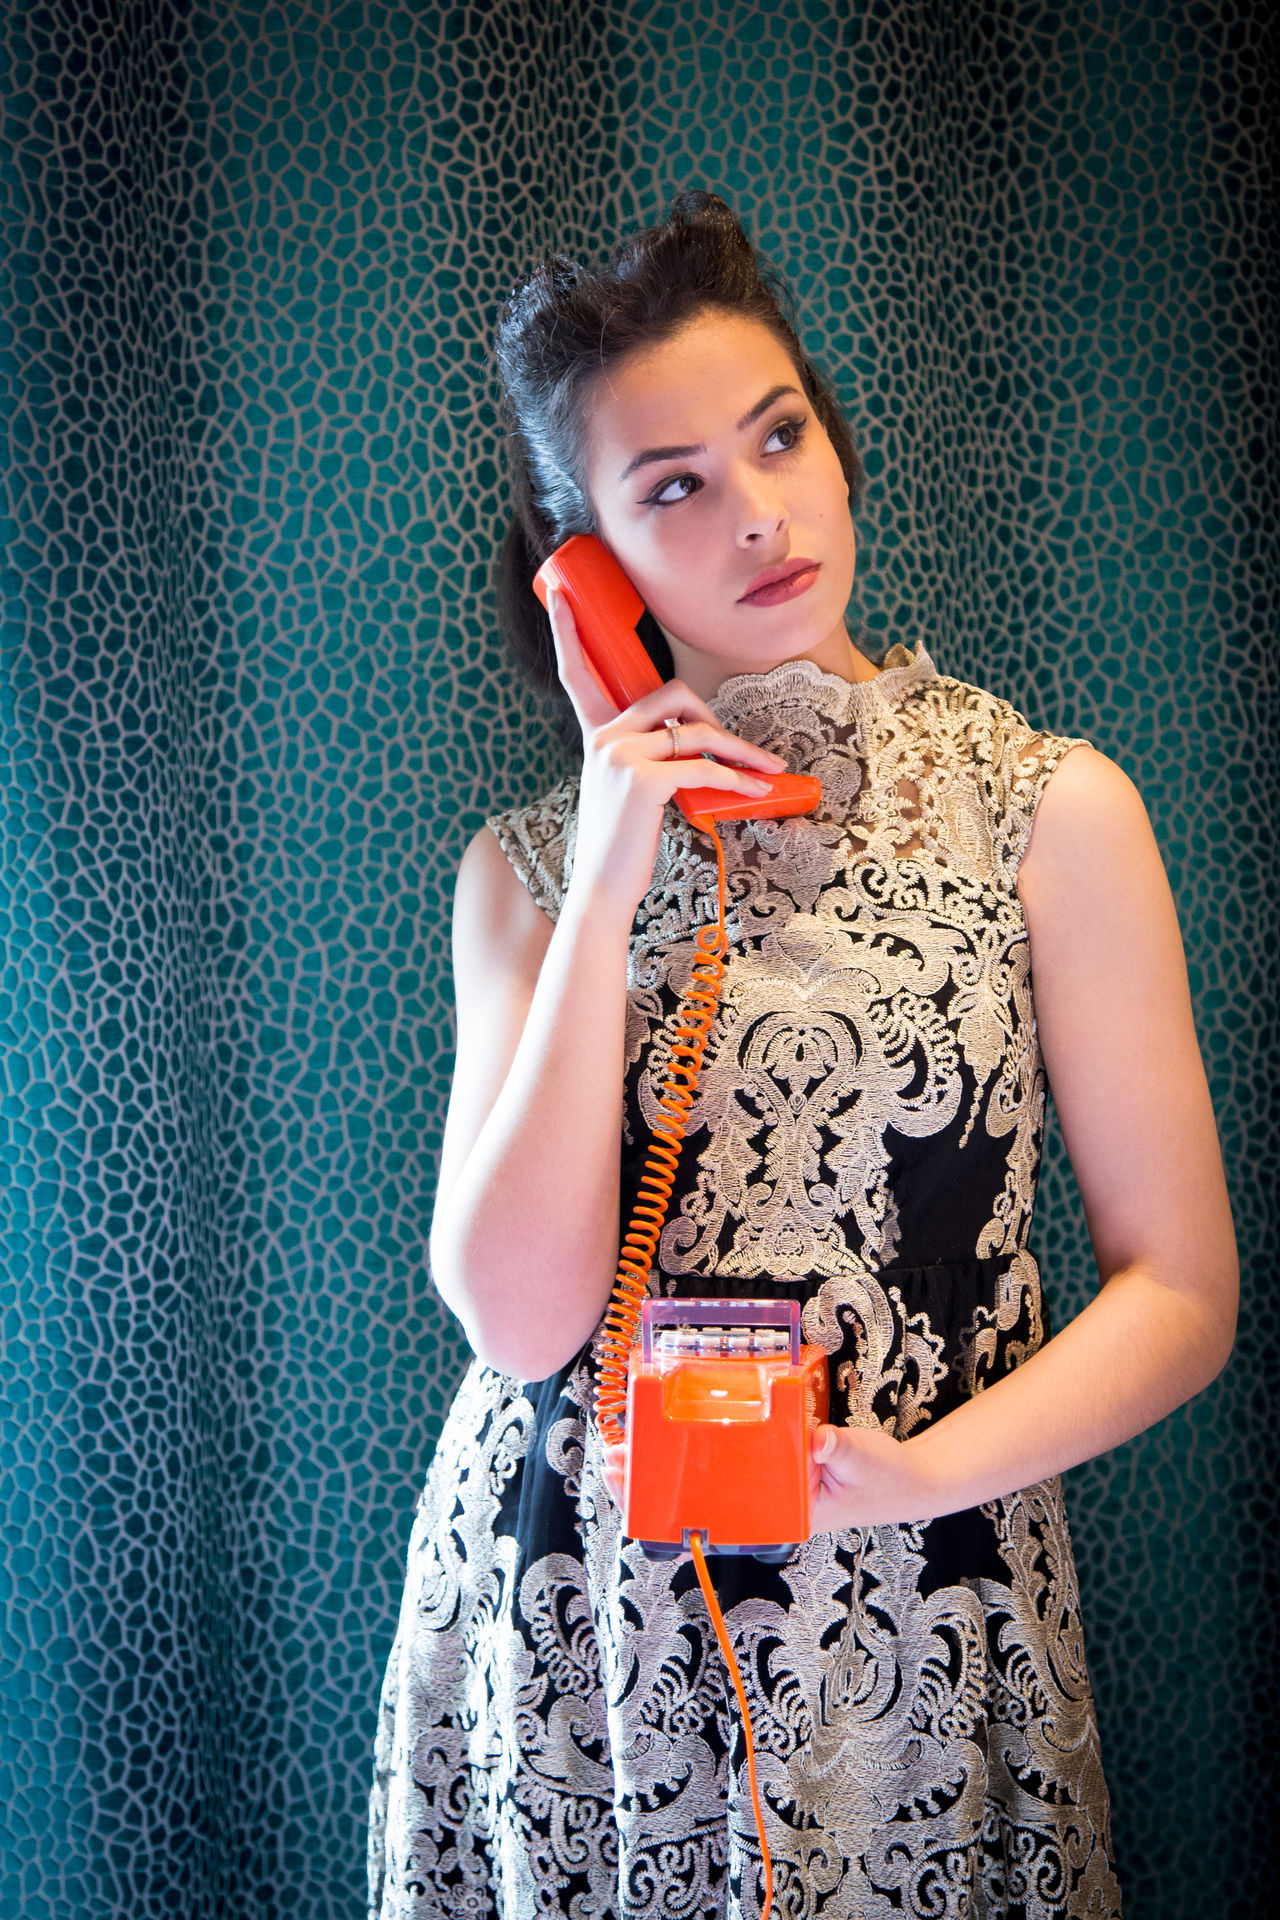 1950s Beautiful Woman Day Drink Drinking Glass Fashion Front View Hair Curlers Holding Home Interior Indoors  Lifestyles Like In The Movies Looking At Camera Old Photos With History One Person One Woman Only Phone Portrait Real People Standing Stylish Waist Up Wallpaper Young Women